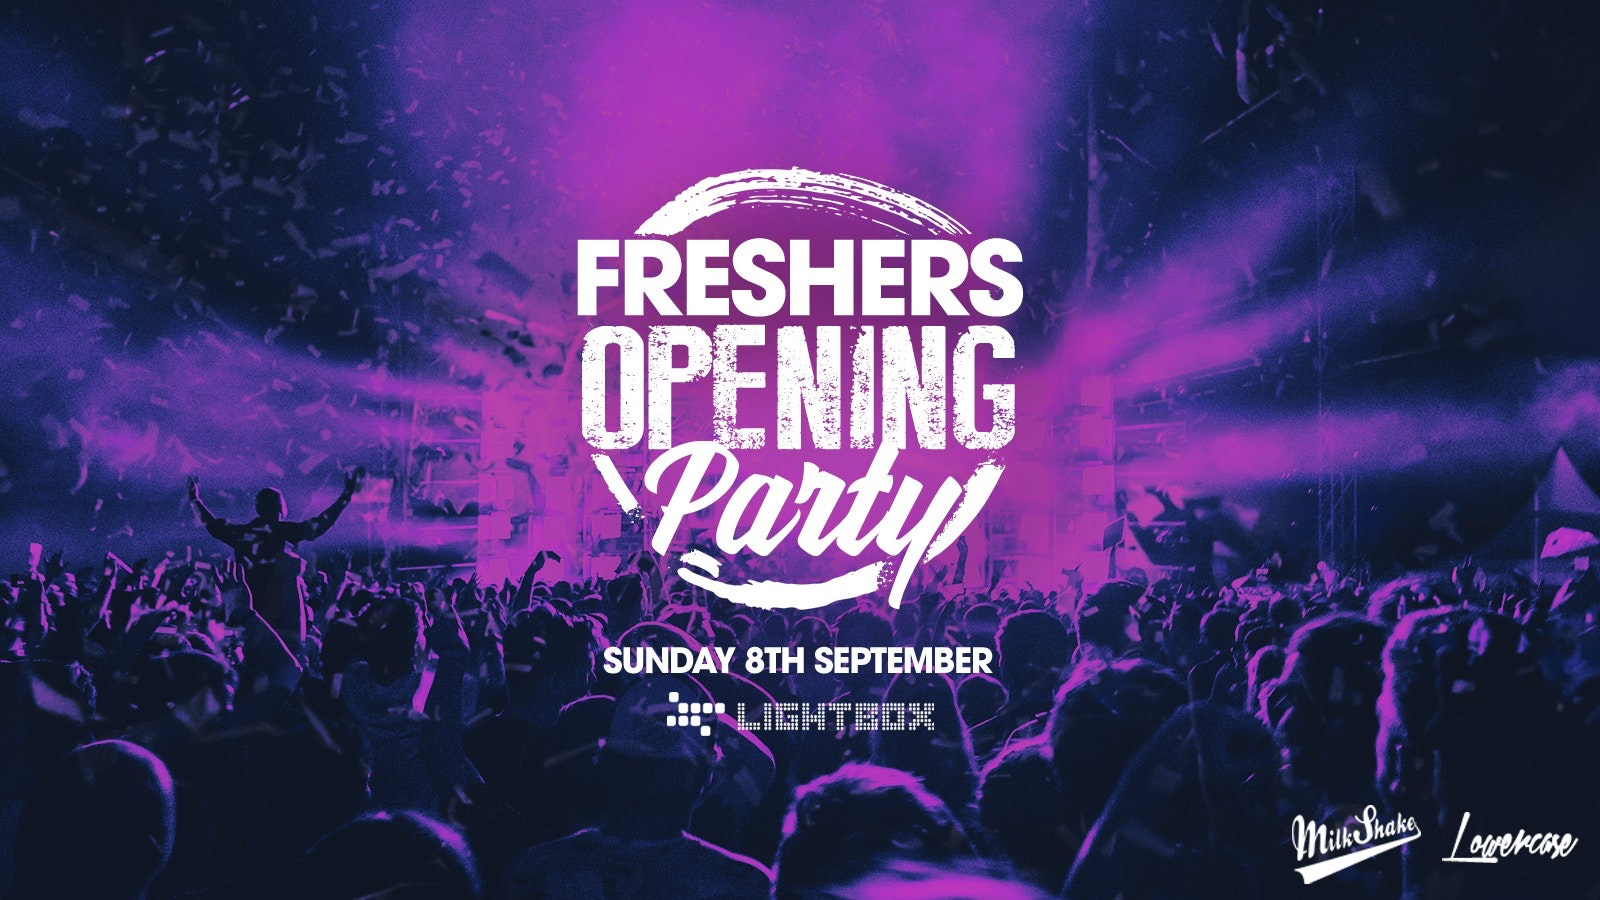 The Official Freshers Opening Party 2019 ⚡ Tickets On The Door